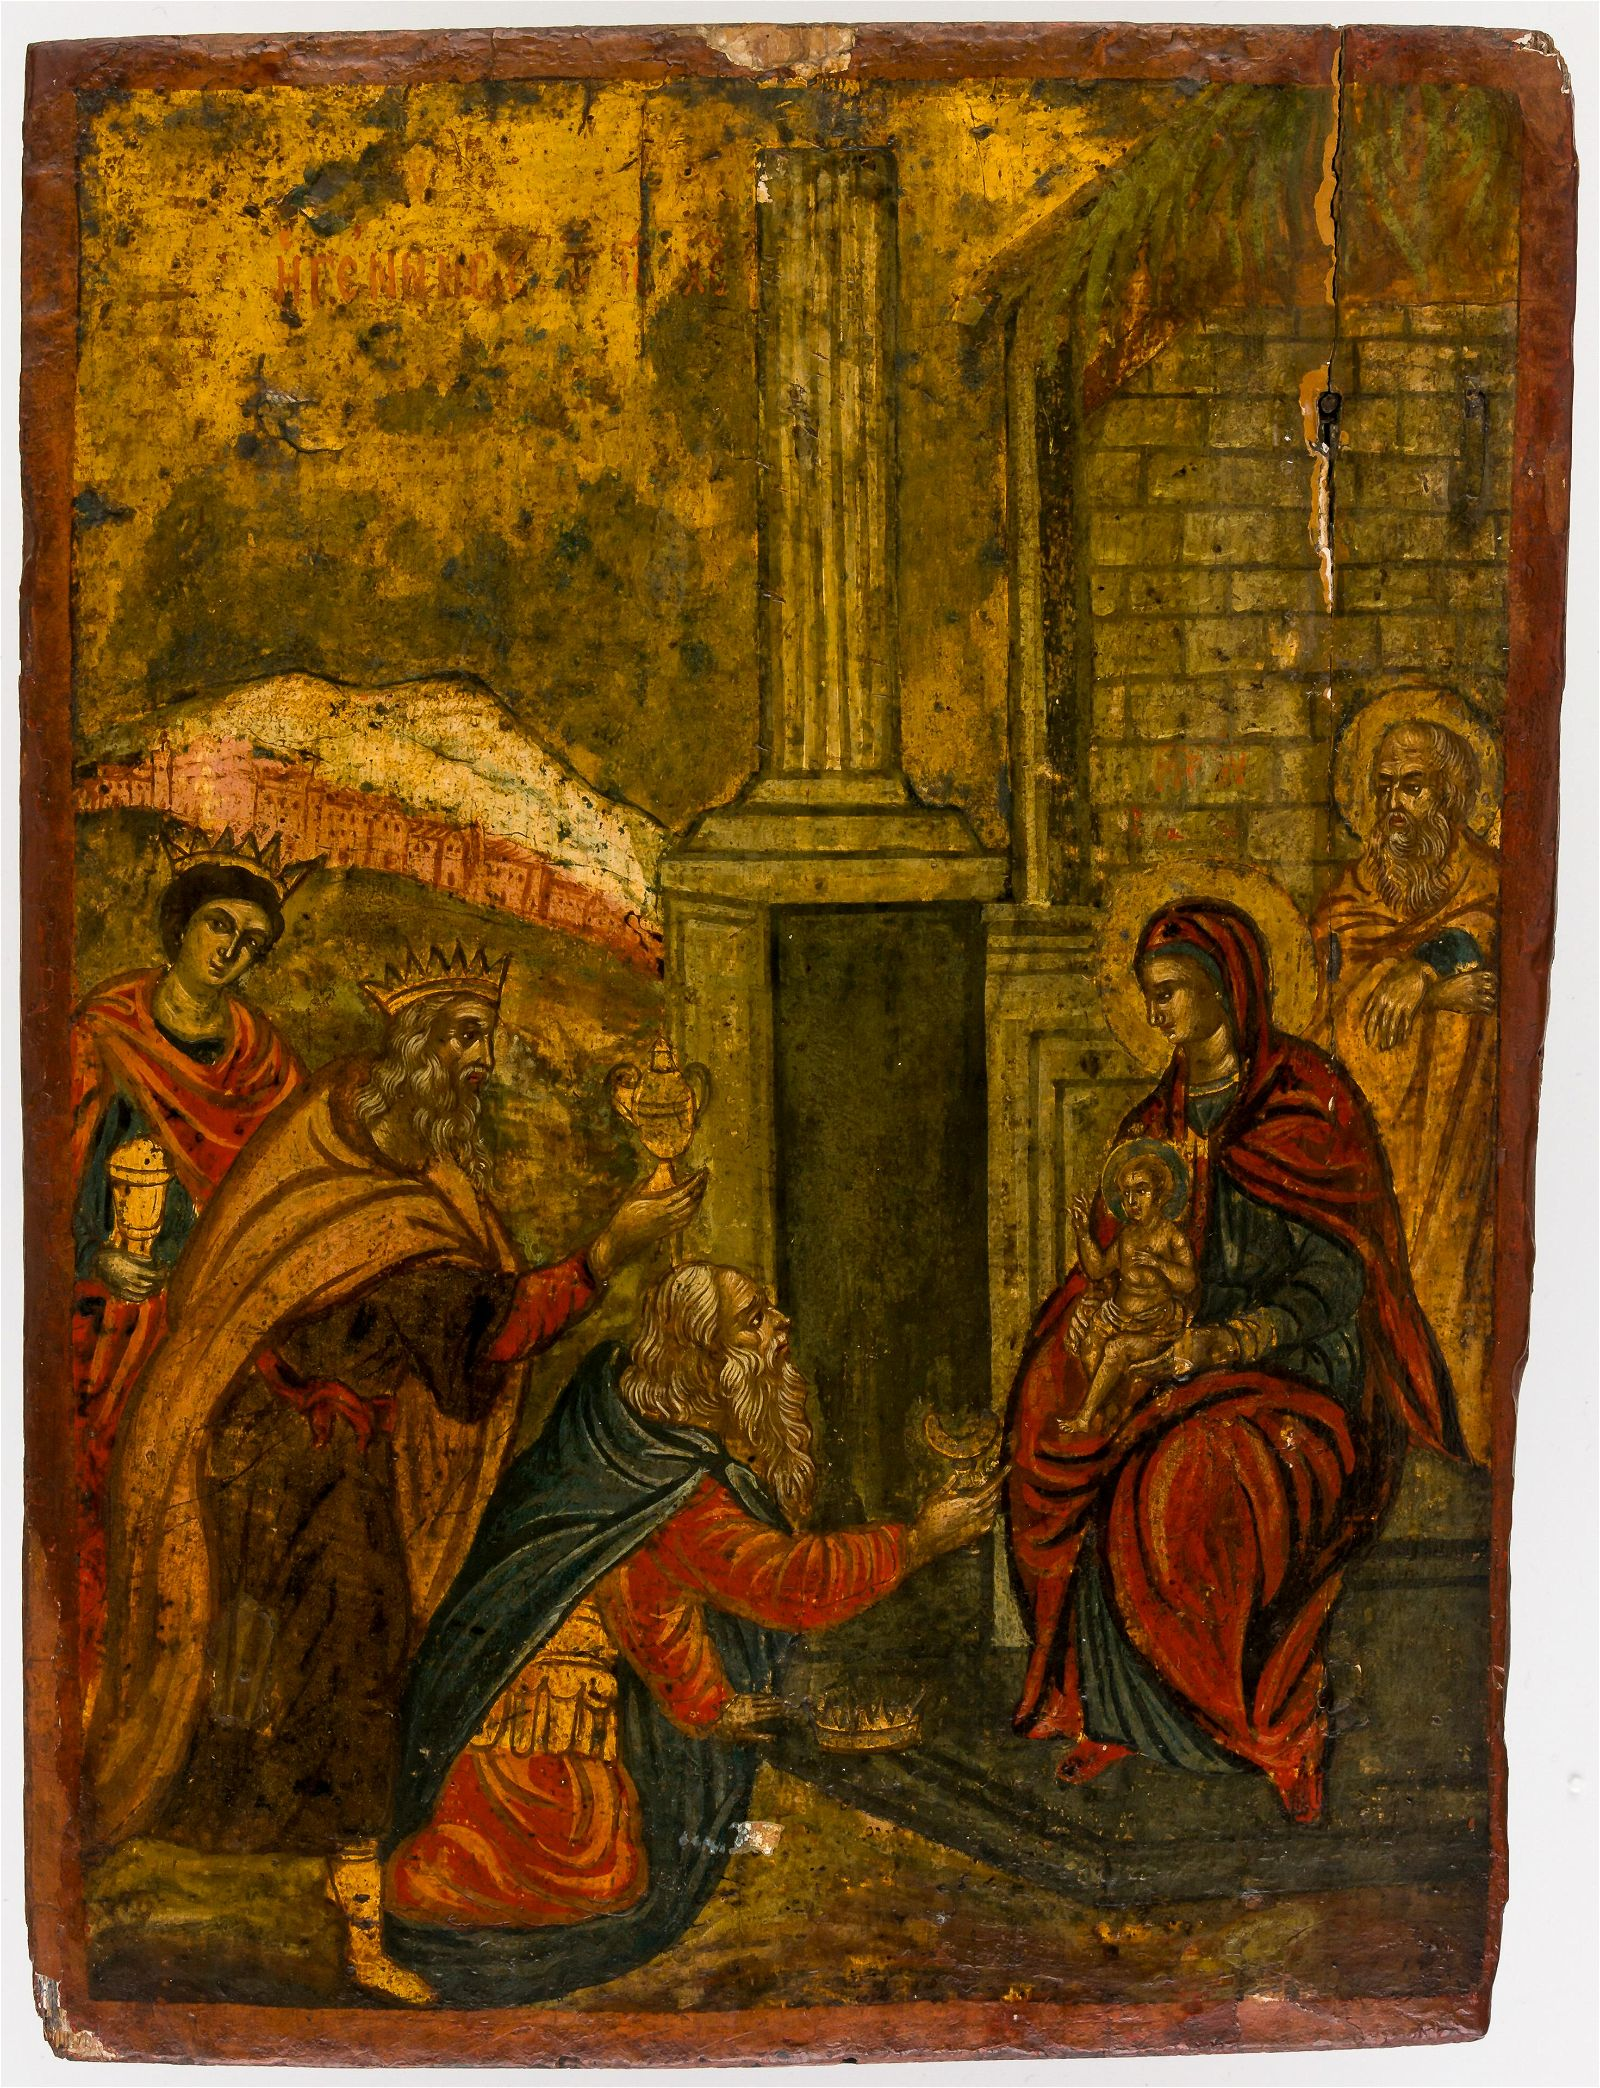 GREEK ICON SHOWING THE ADORATION OF THE 3 MAGI